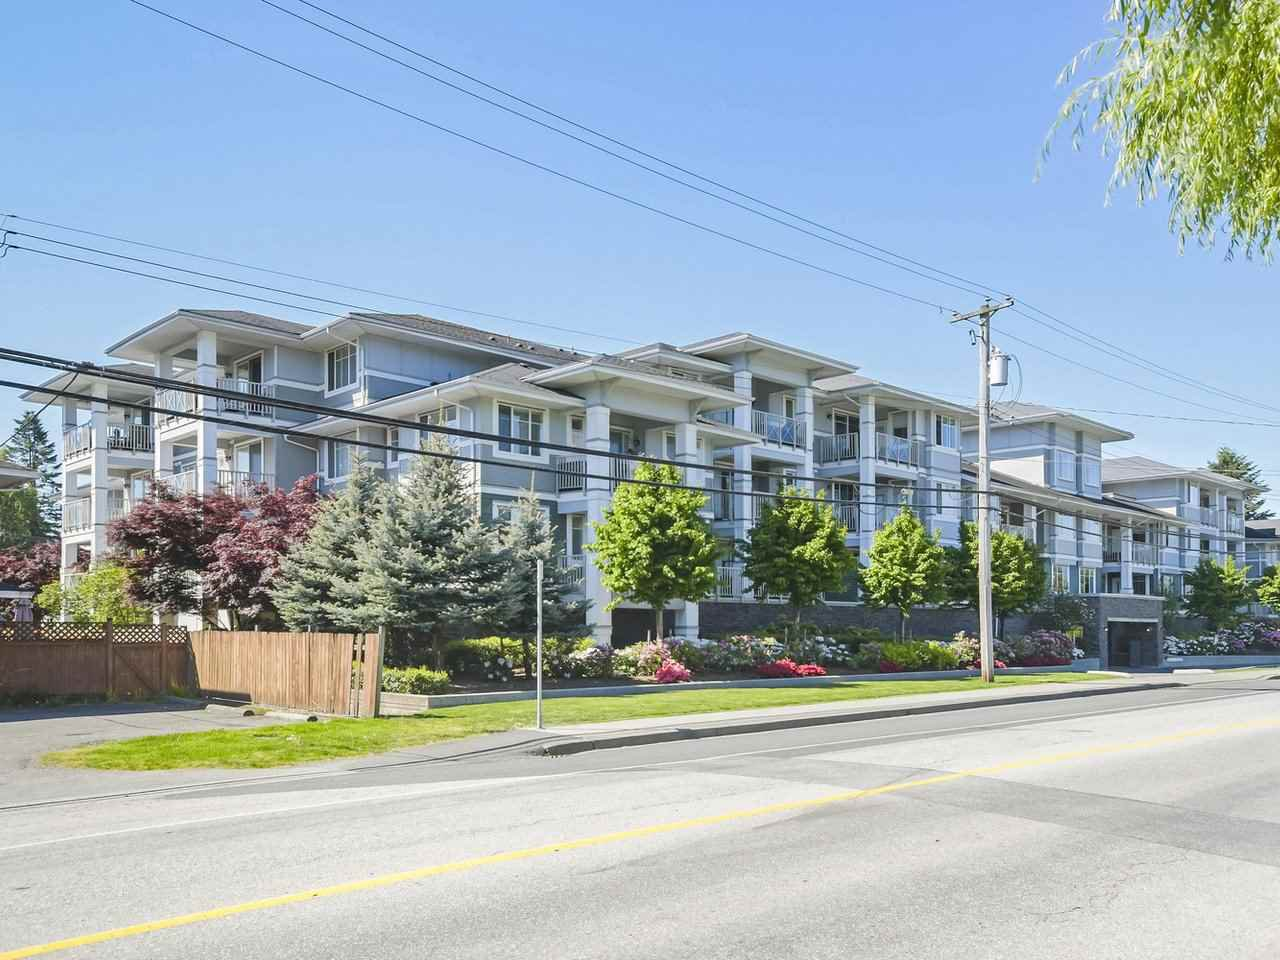 Main Photo: 315 46262 FIRST Avenue in Chilliwack: Chilliwack E Young-Yale Condo for sale : MLS®# R2368927